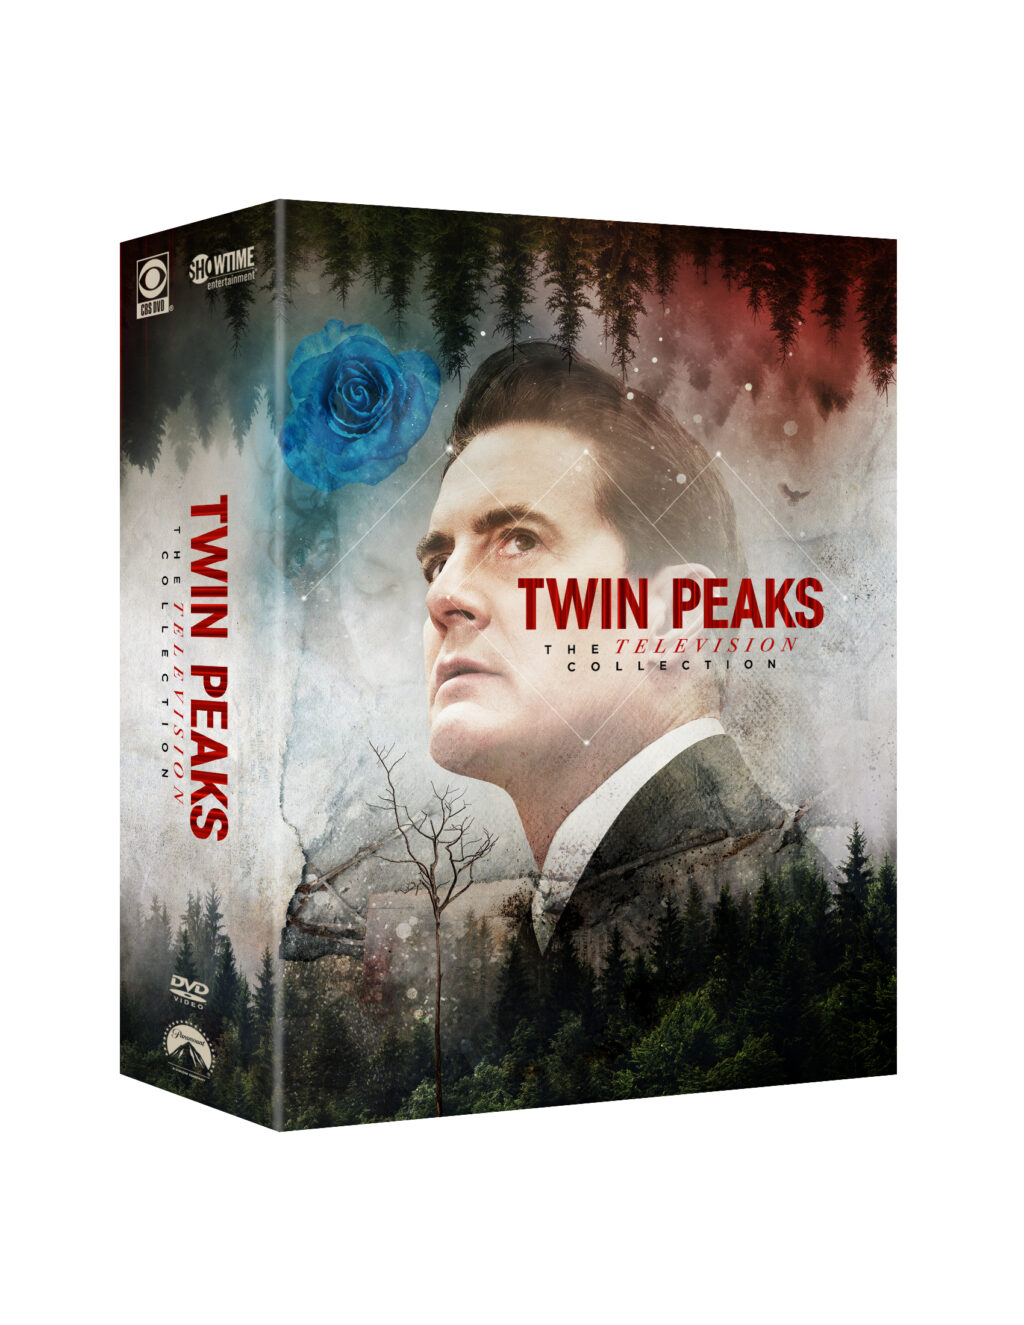 TWINPEAKS CompleteTVSeries DVD Skew1 1024x1325 - TWIN PEAKS: FROM Z TO A Is A Damn Fine Collection!